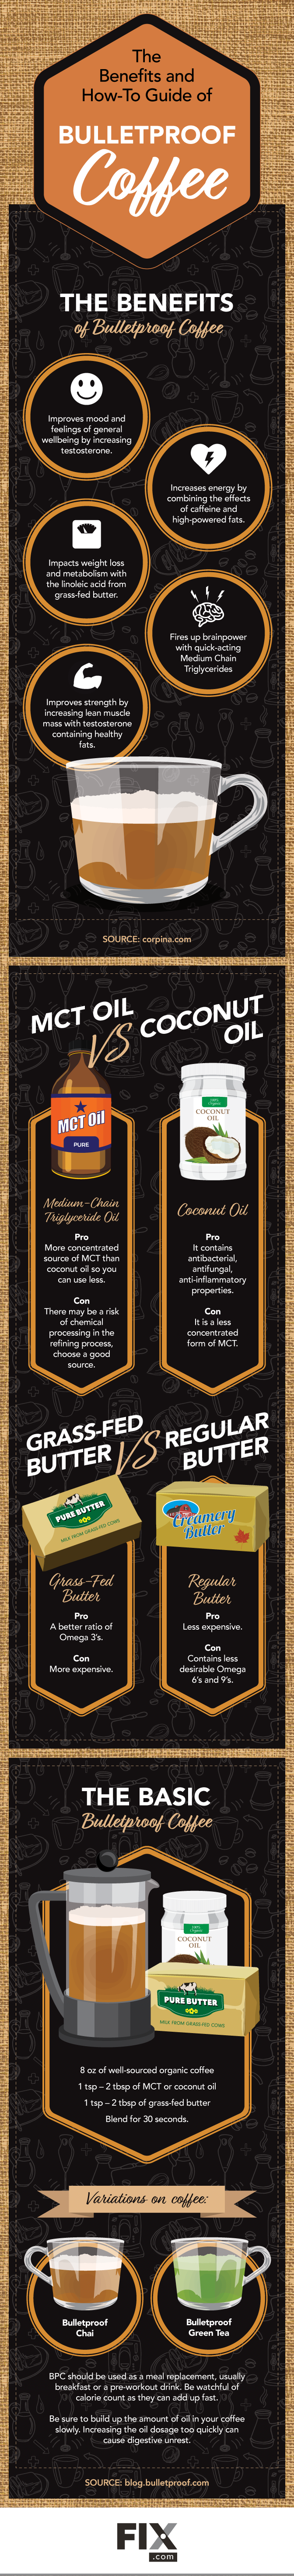 Bulletproof Coffee: The Promise of Power-Packed Health - Infographic